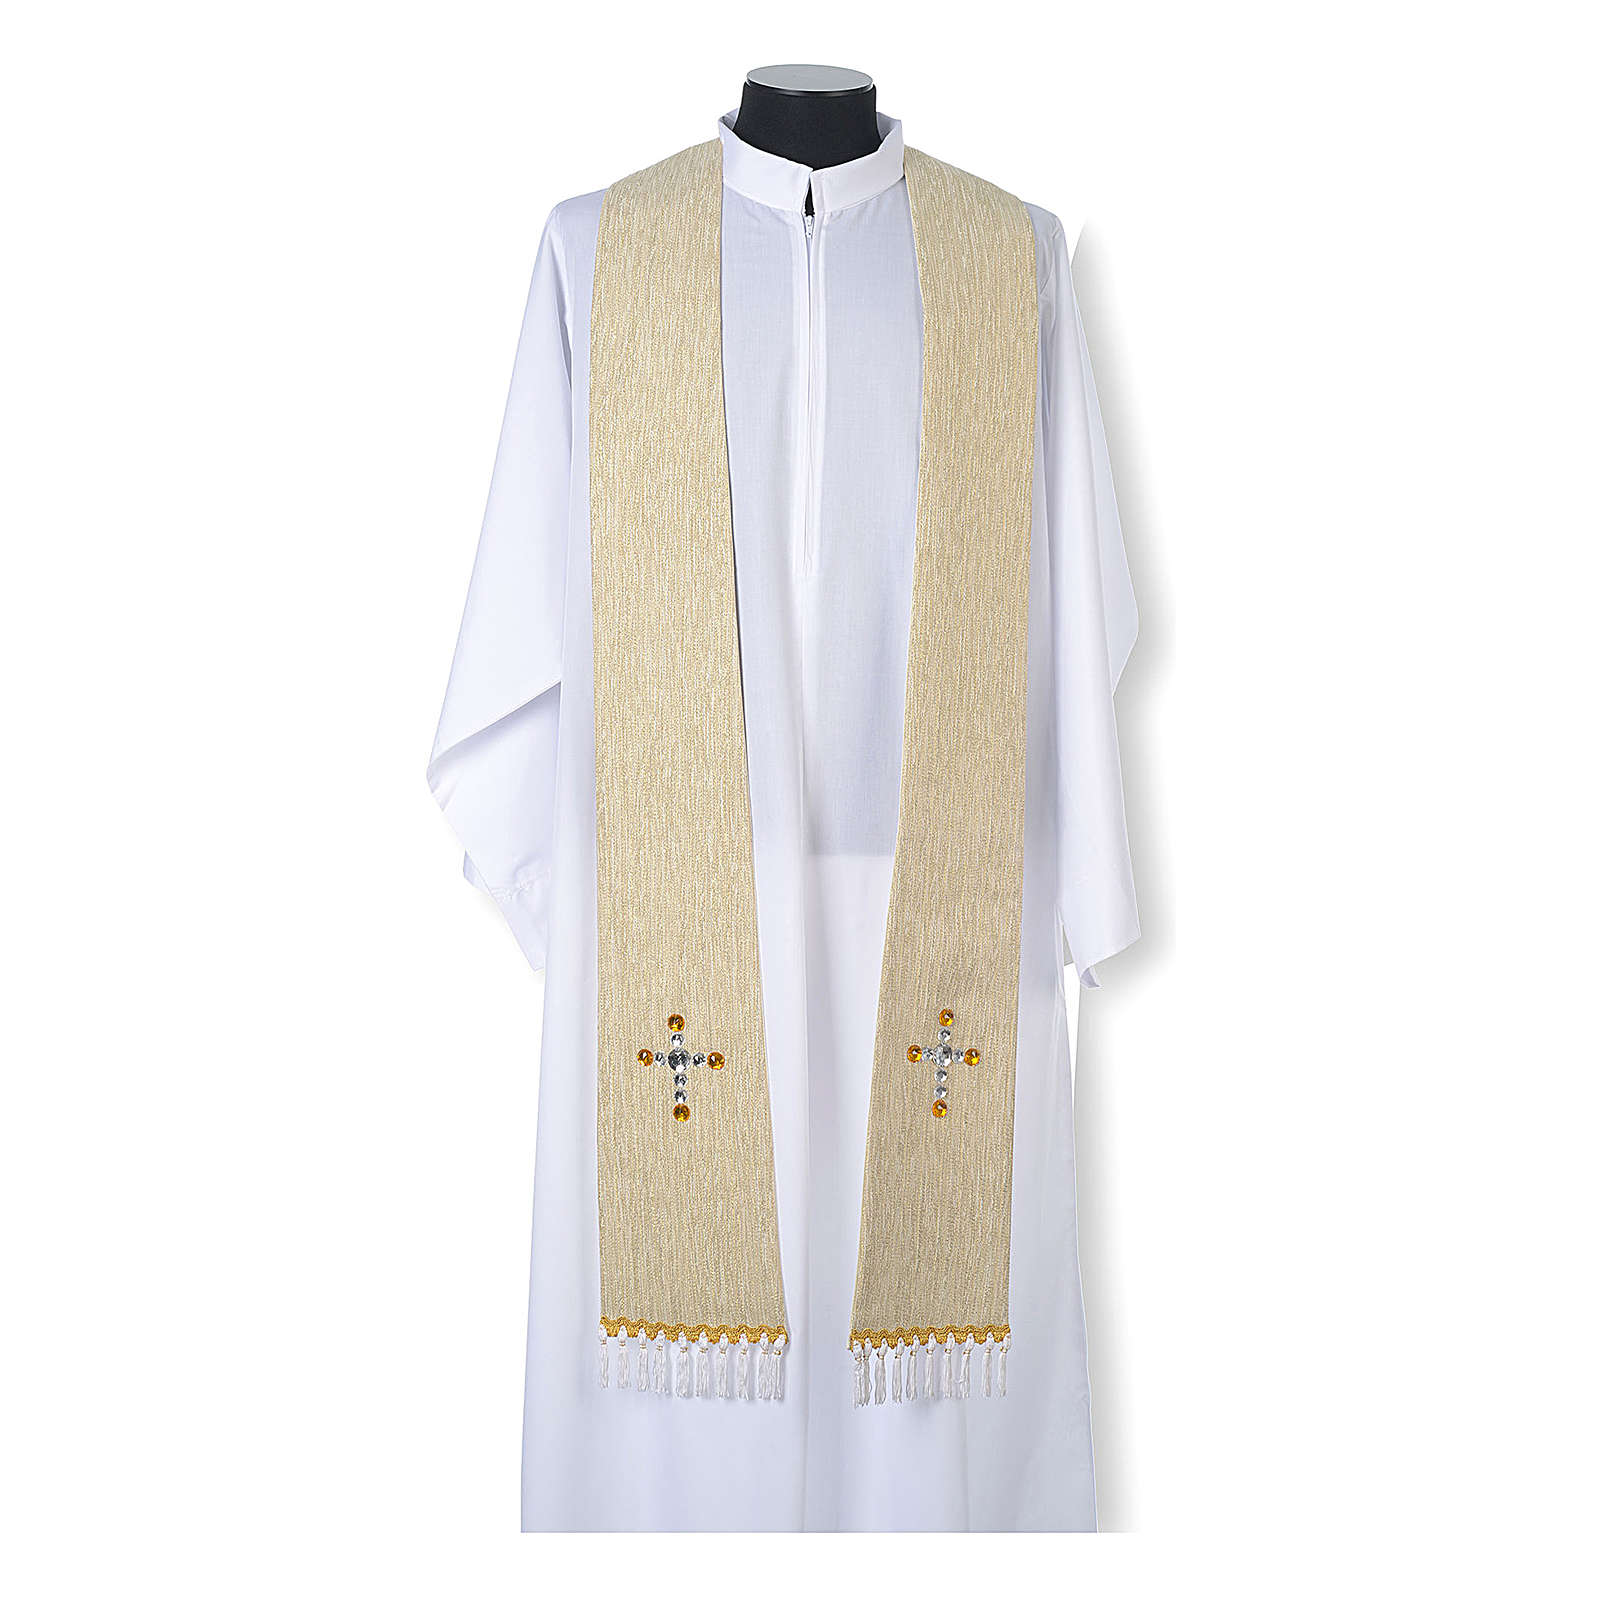 Liturgical stole in lurex, cross with glass stones 4